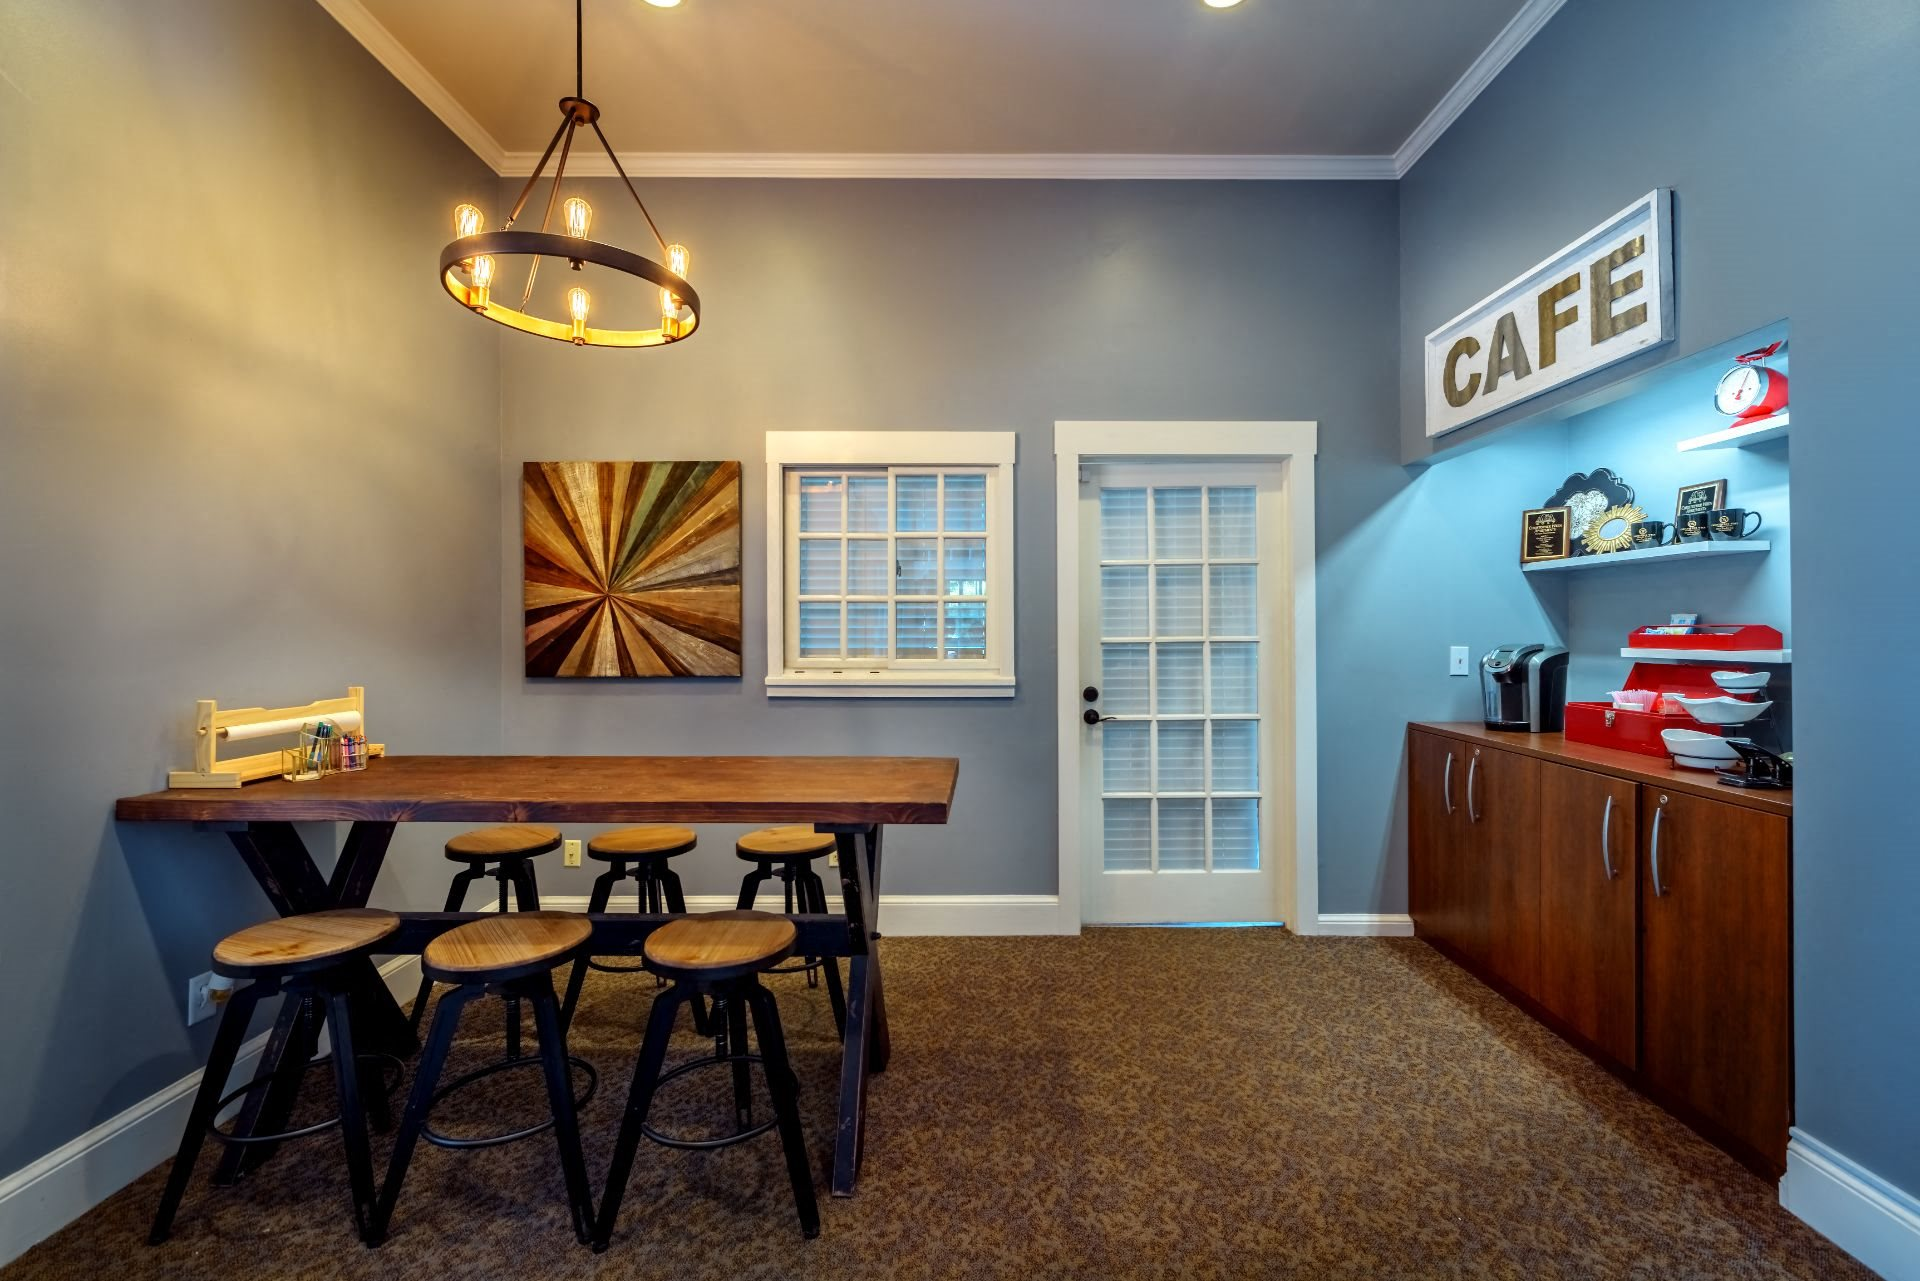 Christopher Wren Apartments Clubhouse with Cafe and Java Lounge, 501 Christopher Wren Drive, Wexford, PA 15090